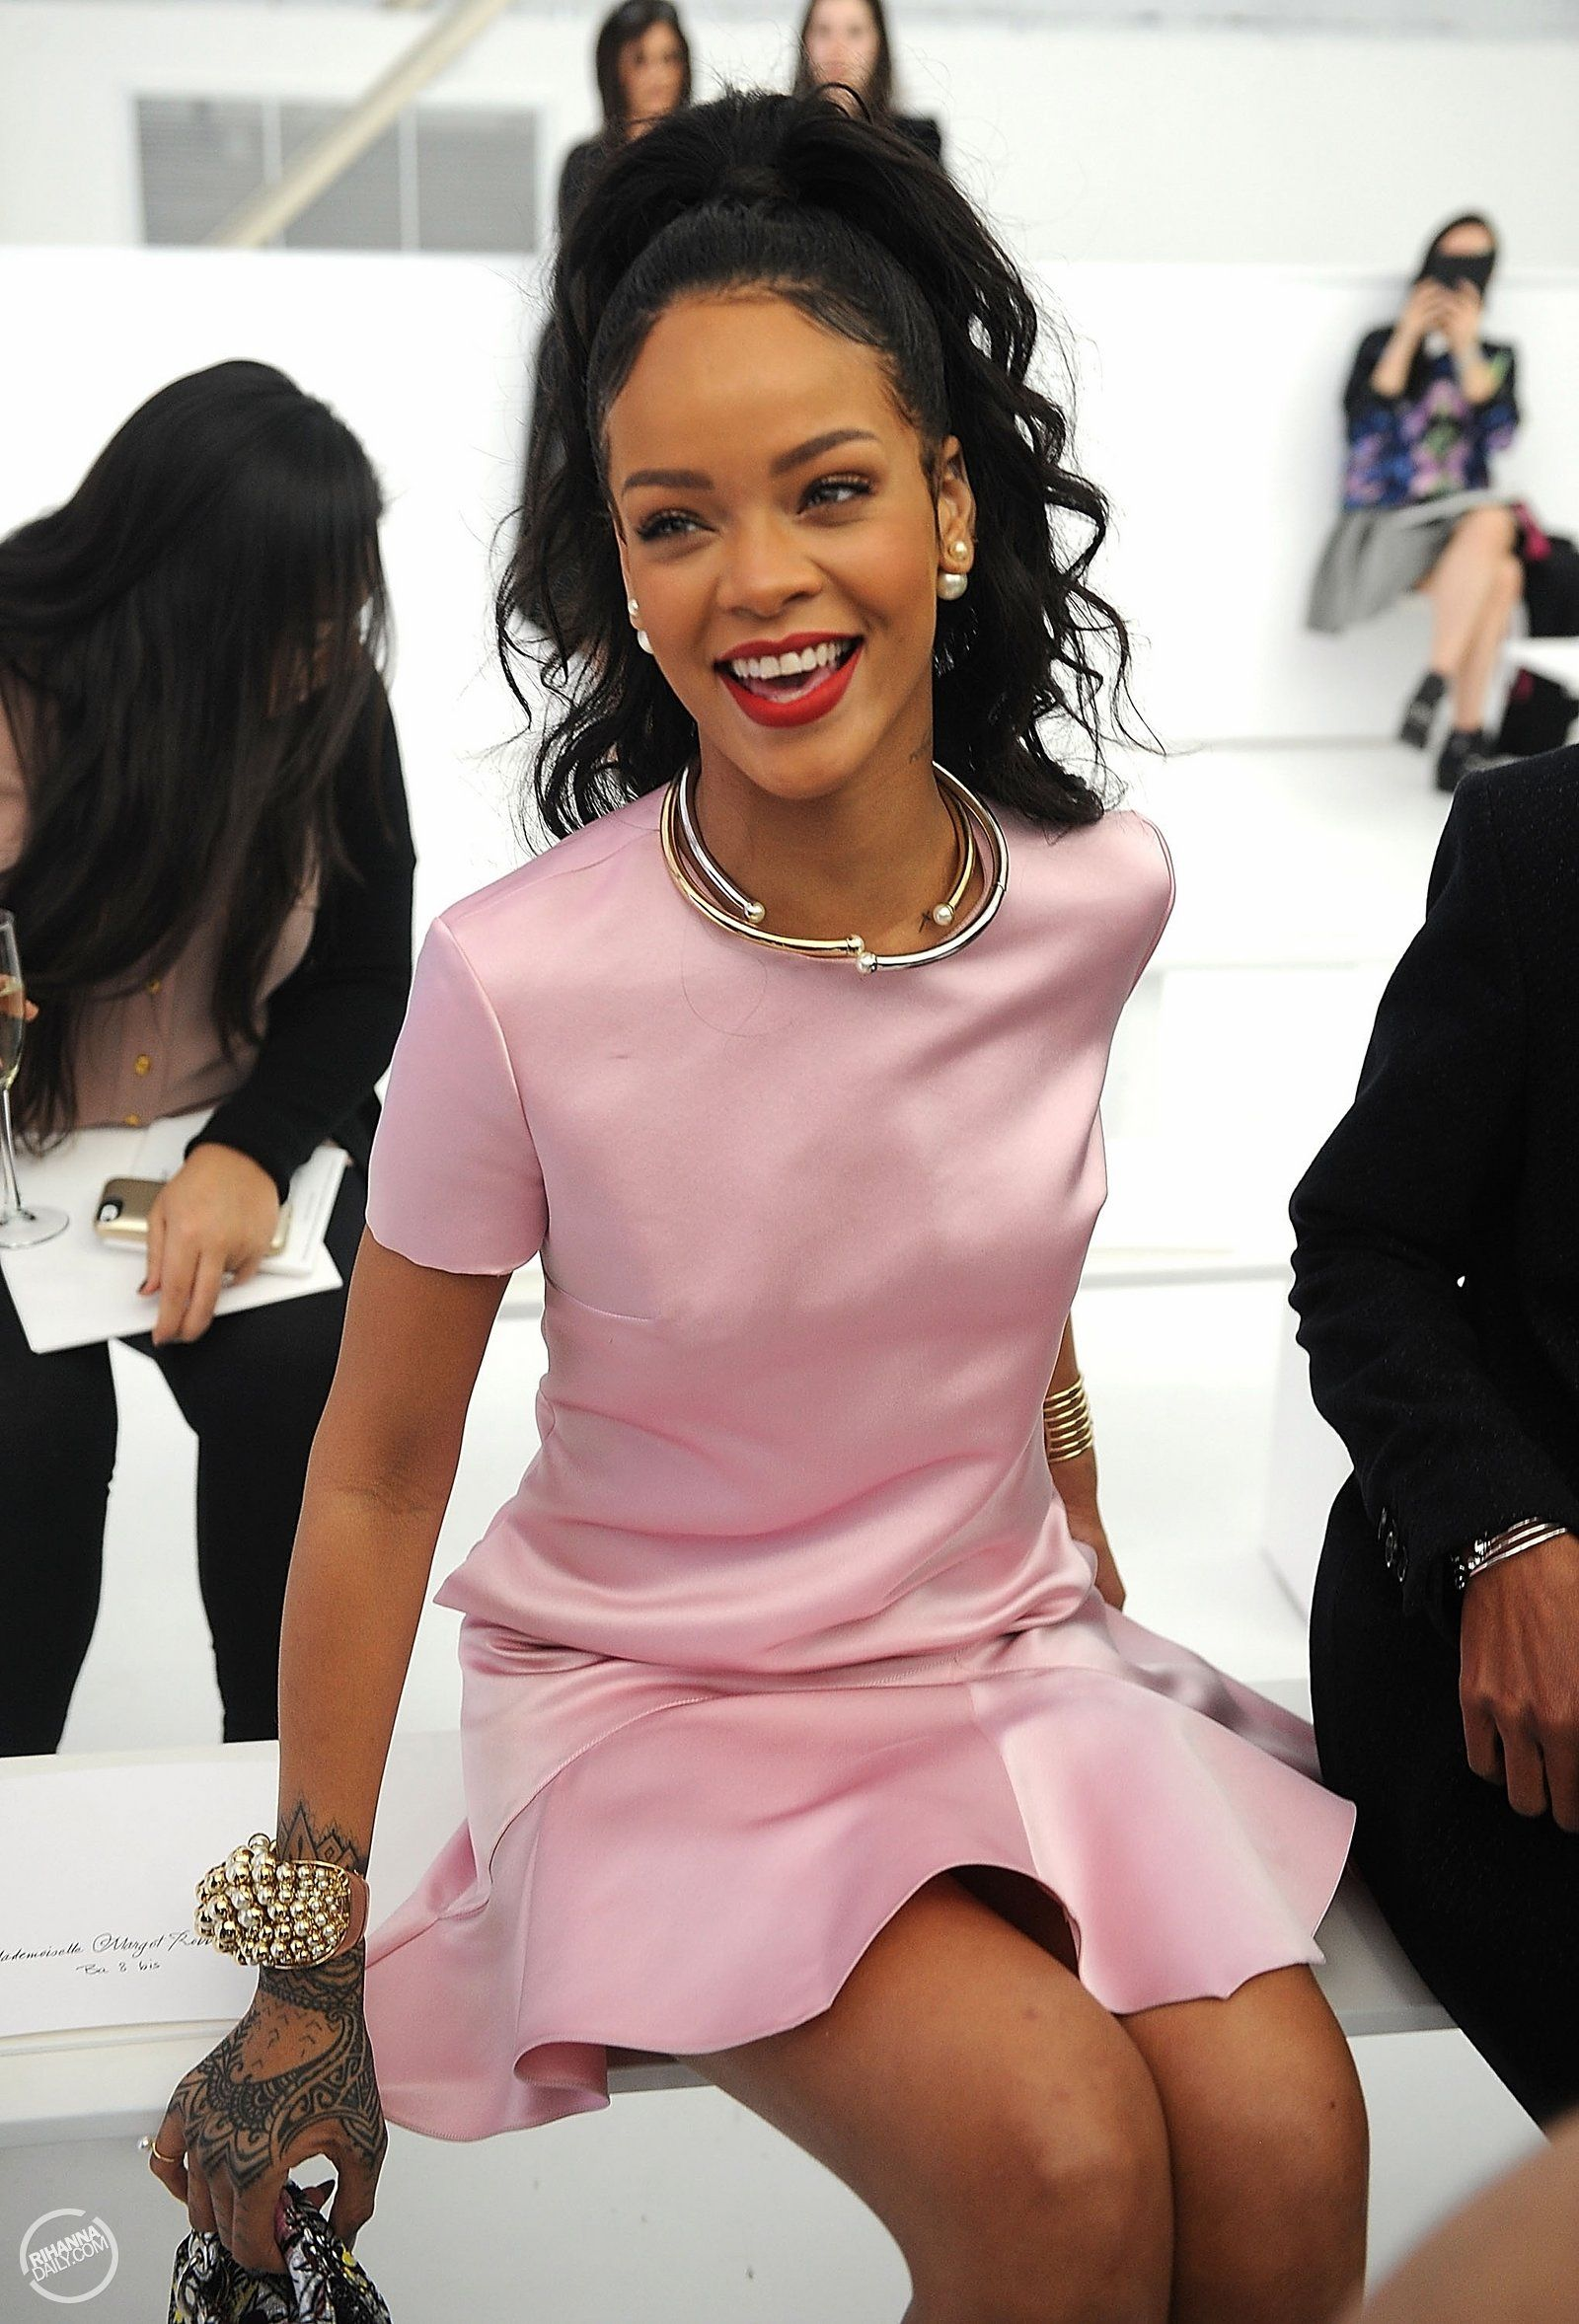 Racy Rihanna goes demure in pink dress at the Dior fashion show in NY